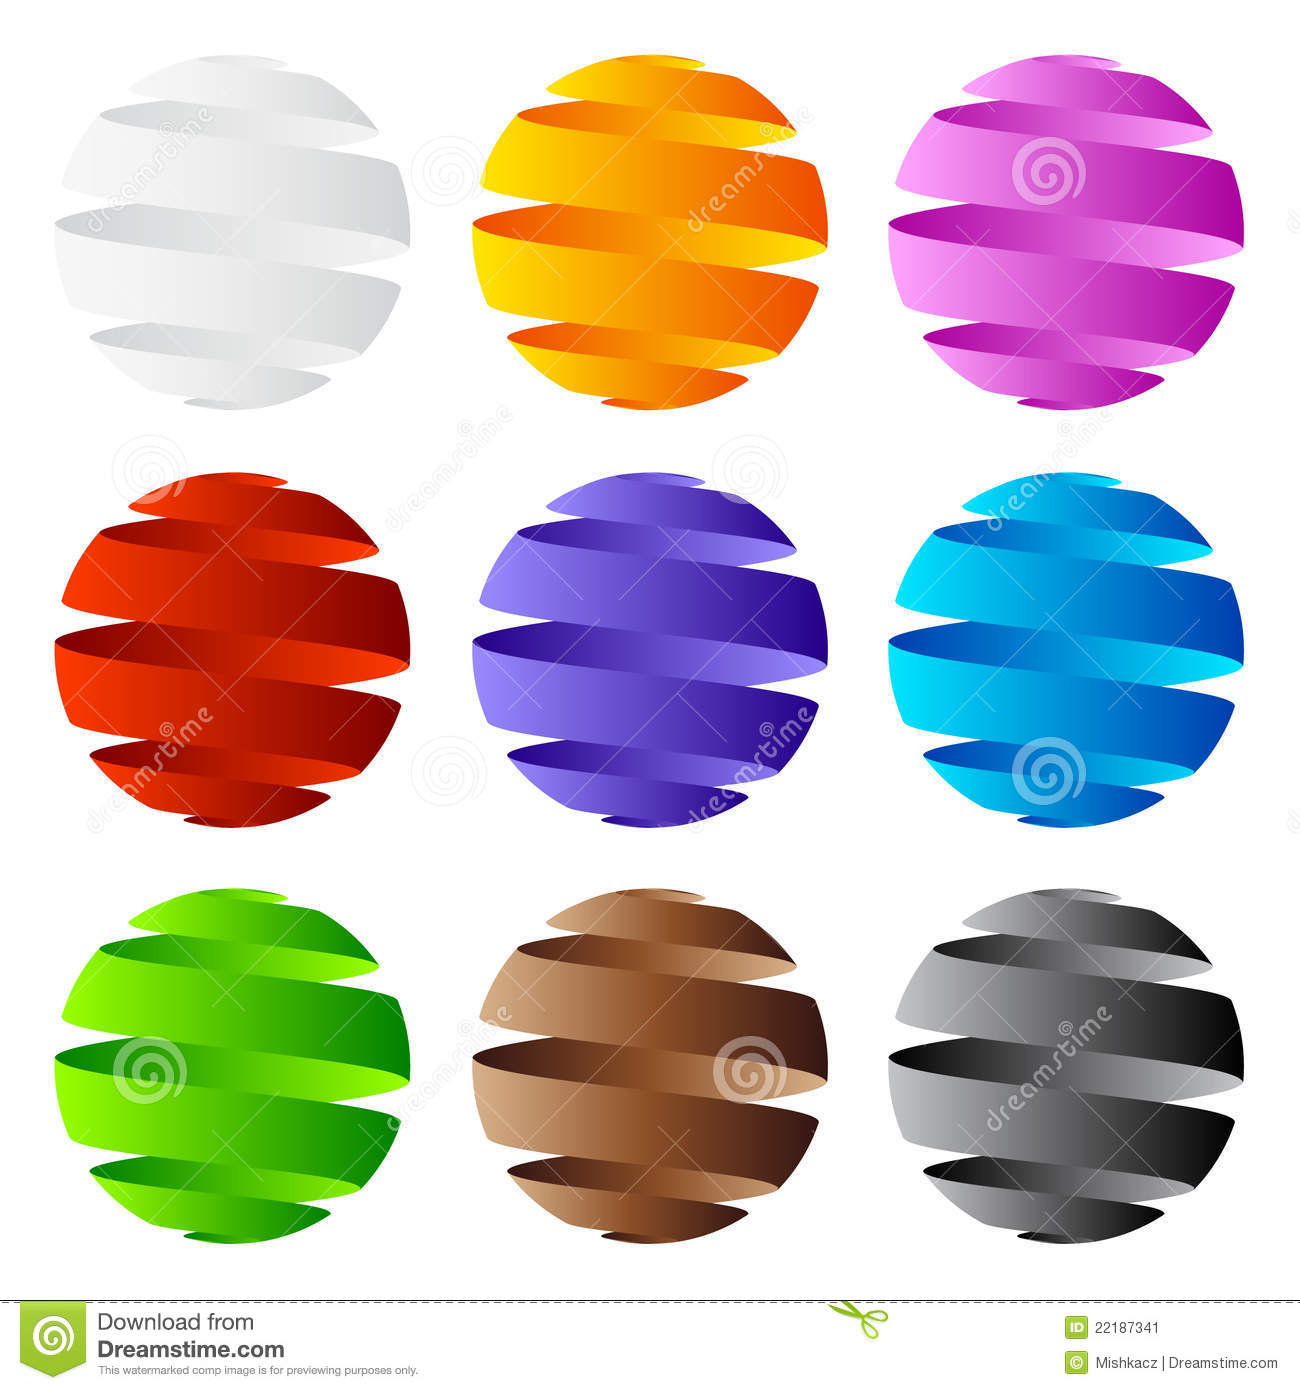 Img Mouseover in addition Quercus Montana besides C Ac F F Ff F Daaeeba Fd besides D Sphere Icon Logo Design likewise C E A C A D Fd A B A C A. on green spiral symbol